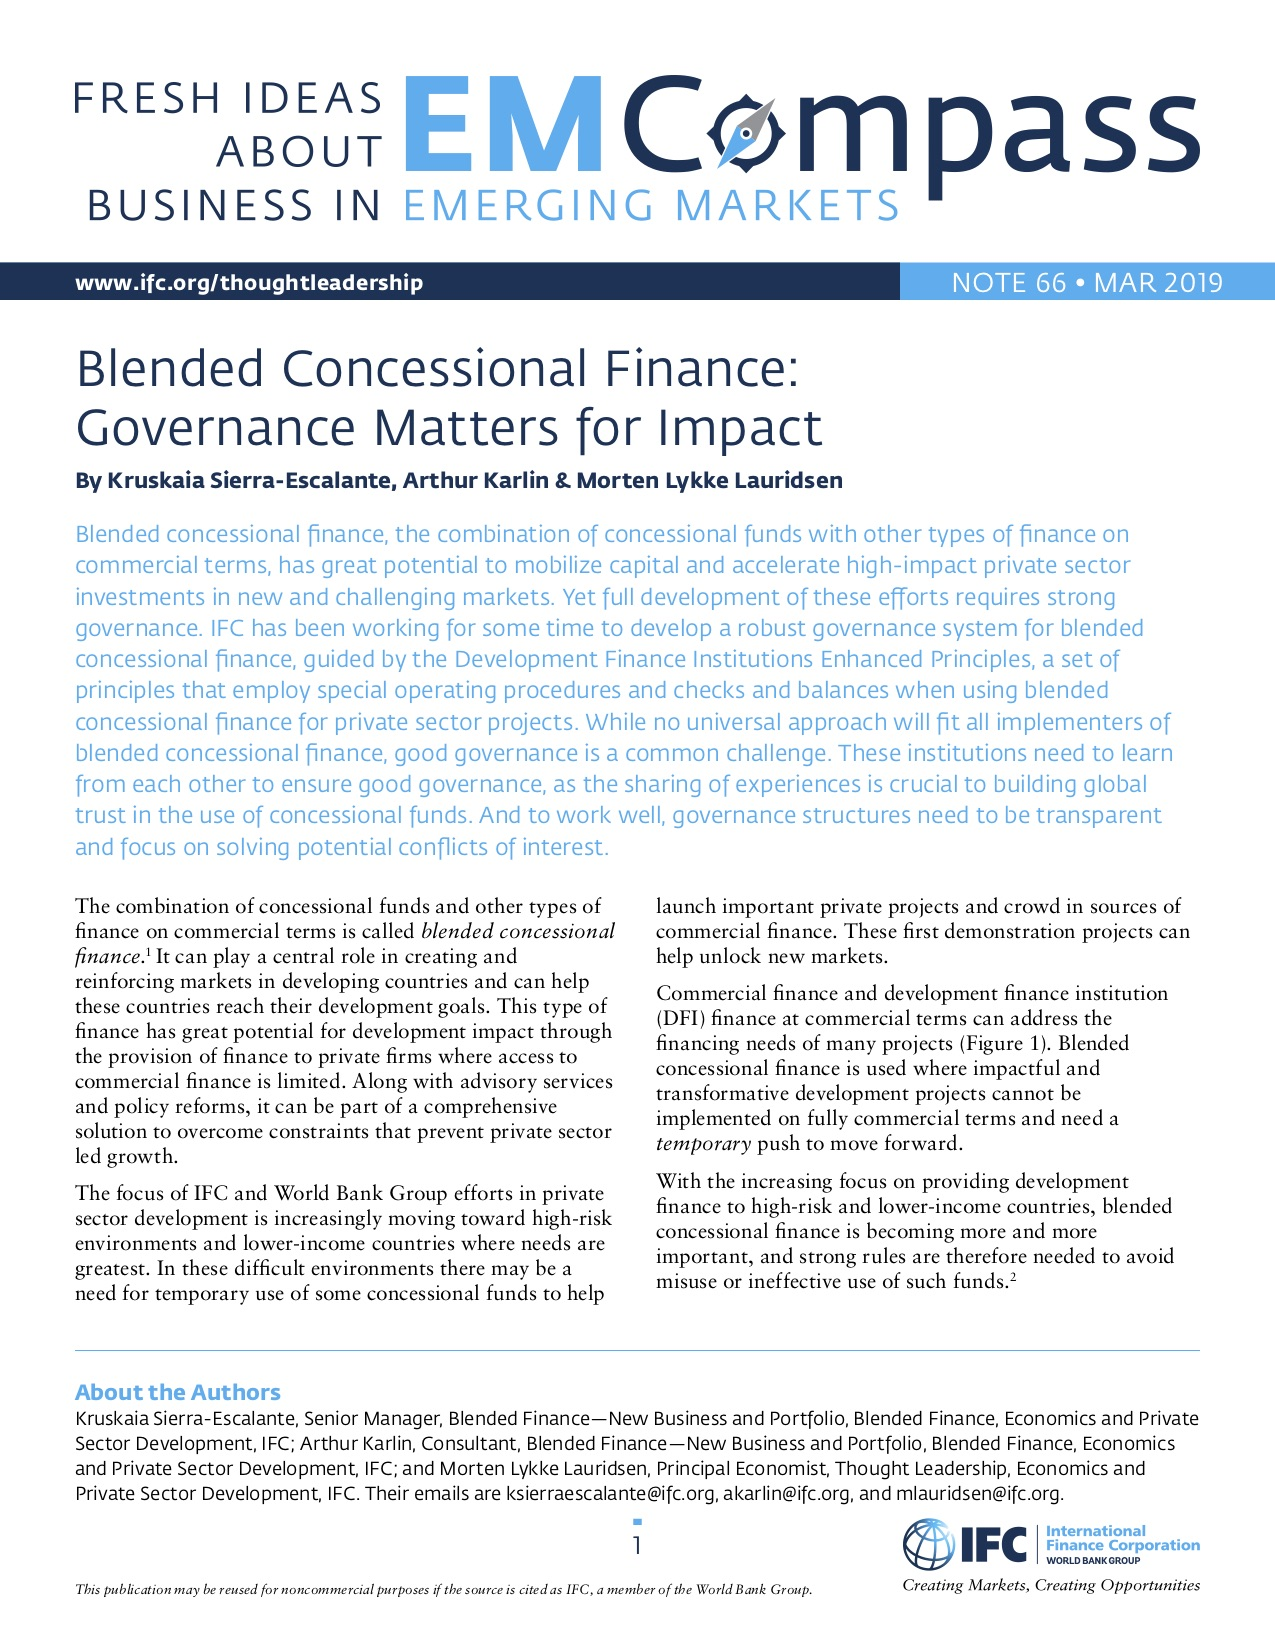 Blended Concessional Finance: Governance Matters for Impact